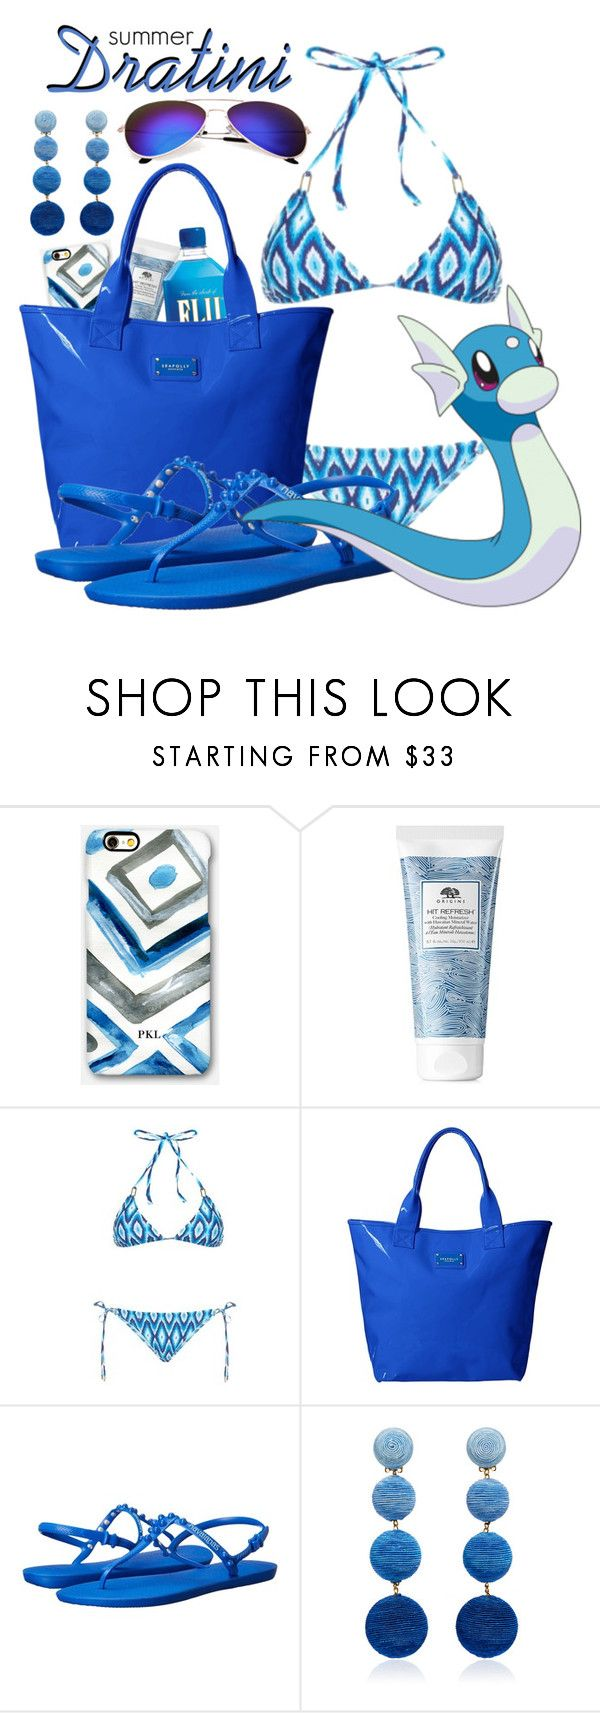 """Pokemon Beach: Dratini"" by freezespell ❤ liked on Polyvore featuring Rianna Phillips, Origins, Melissa Odabash, Seafolly, Havaianas and Rebecca de Ravenel"